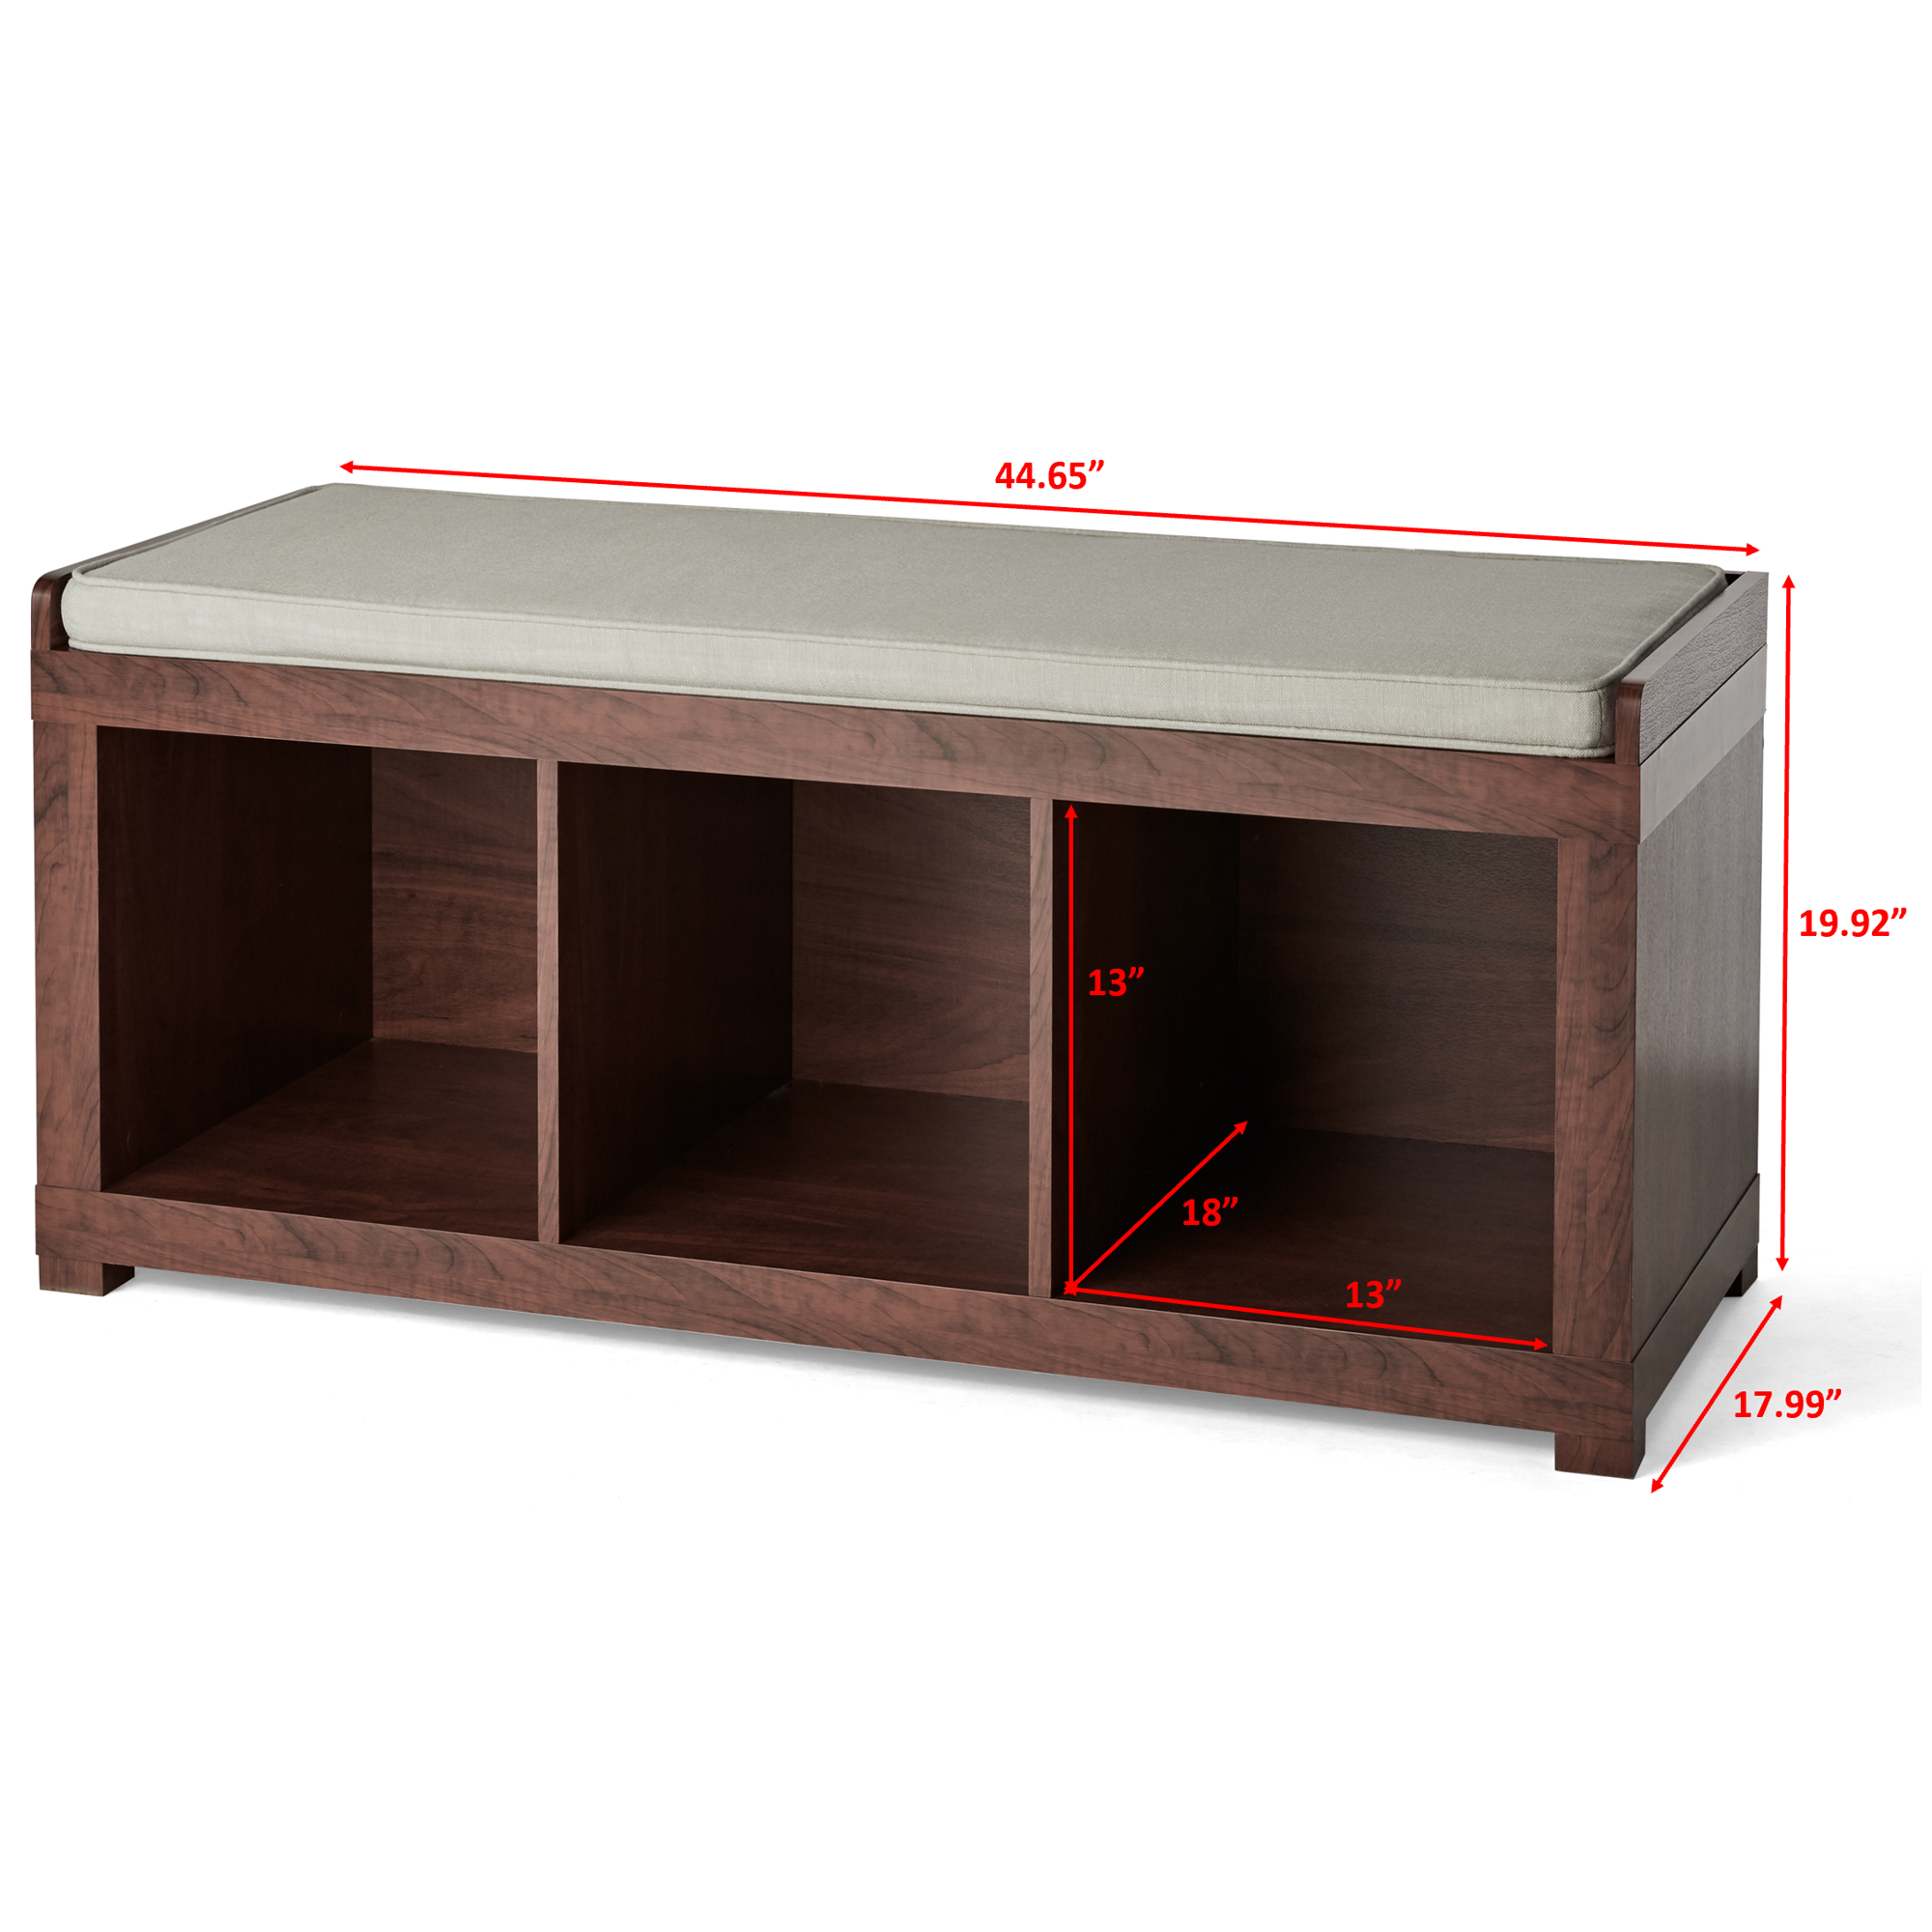 f500ee476cffa3662dbb08069311bb51 - Better Homes And Gardens 3 Cube Organizer Bench With Cushion